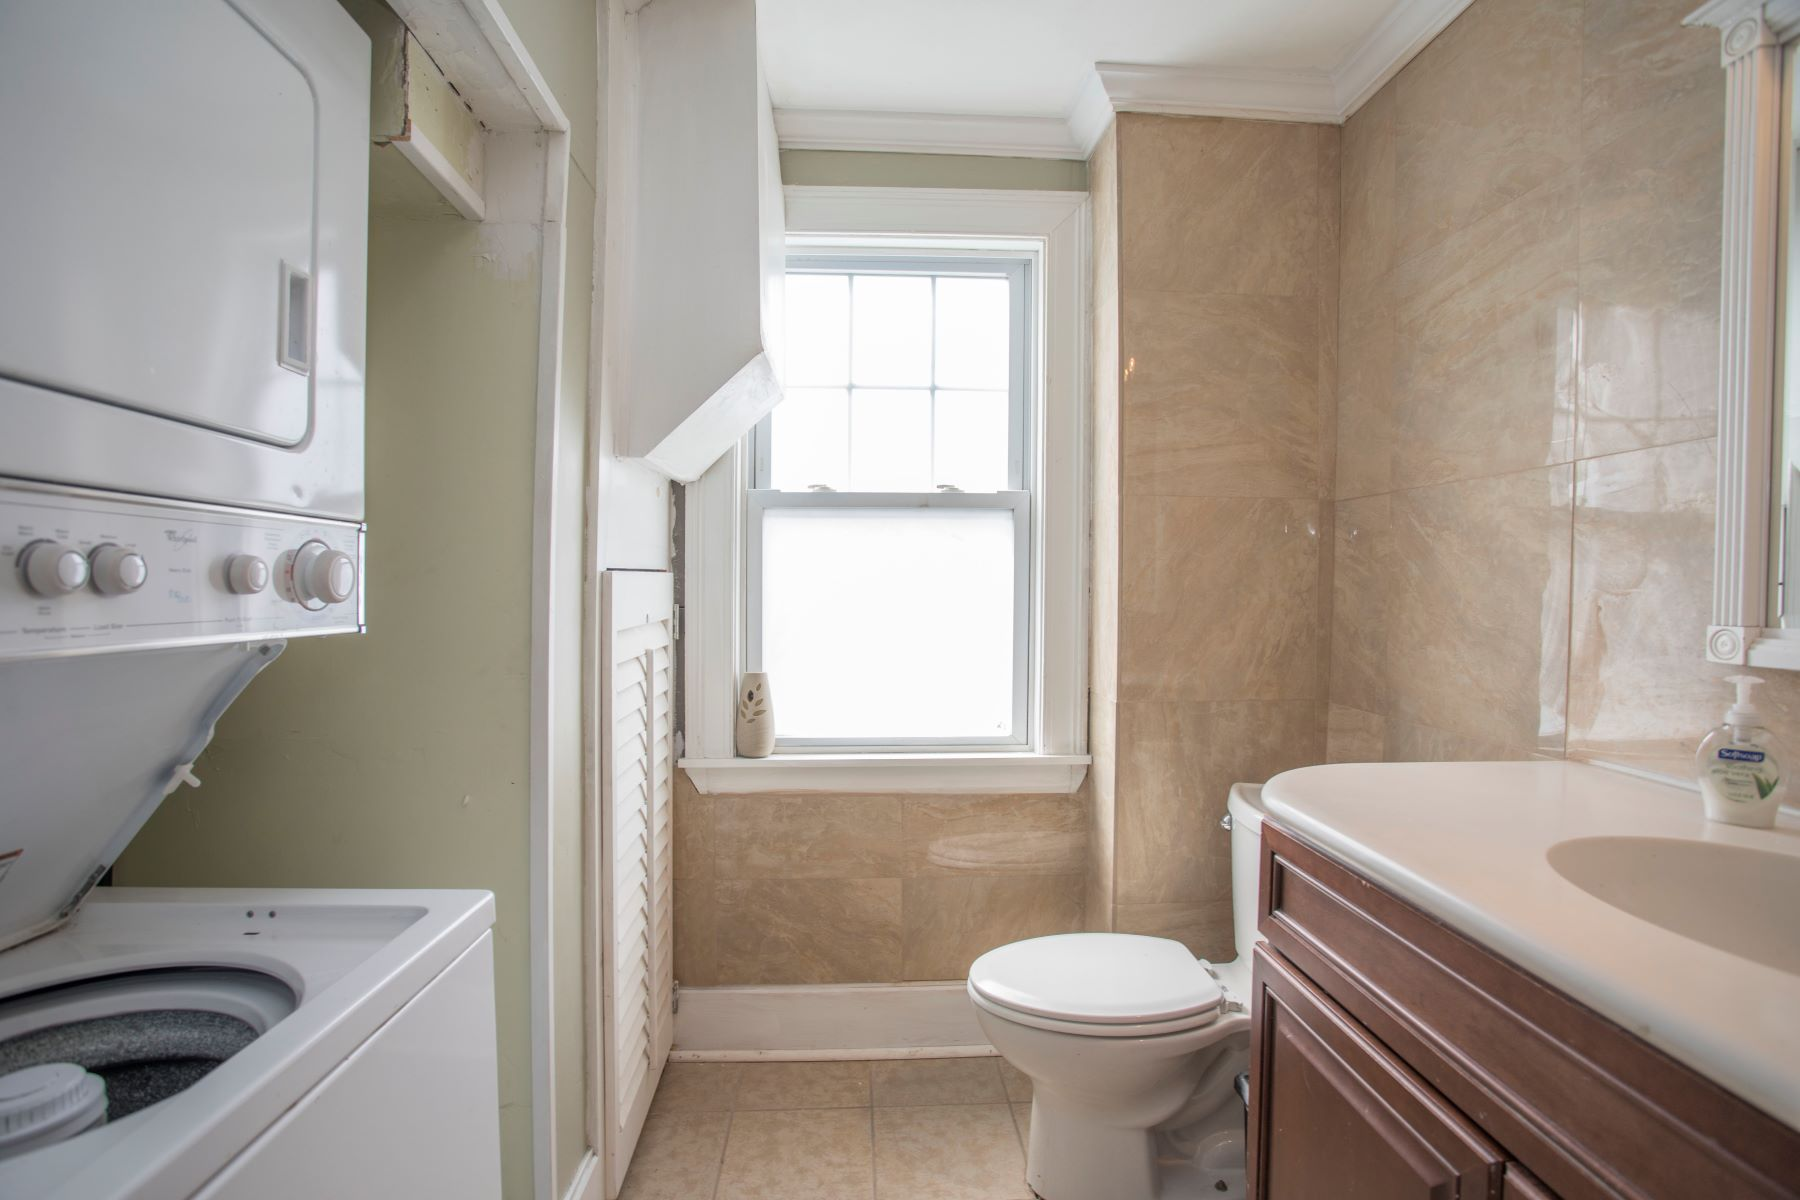 Additional photo for property listing at The Williams Cottage 1 Dresser Street Newport, Rhode Island 02840 United States